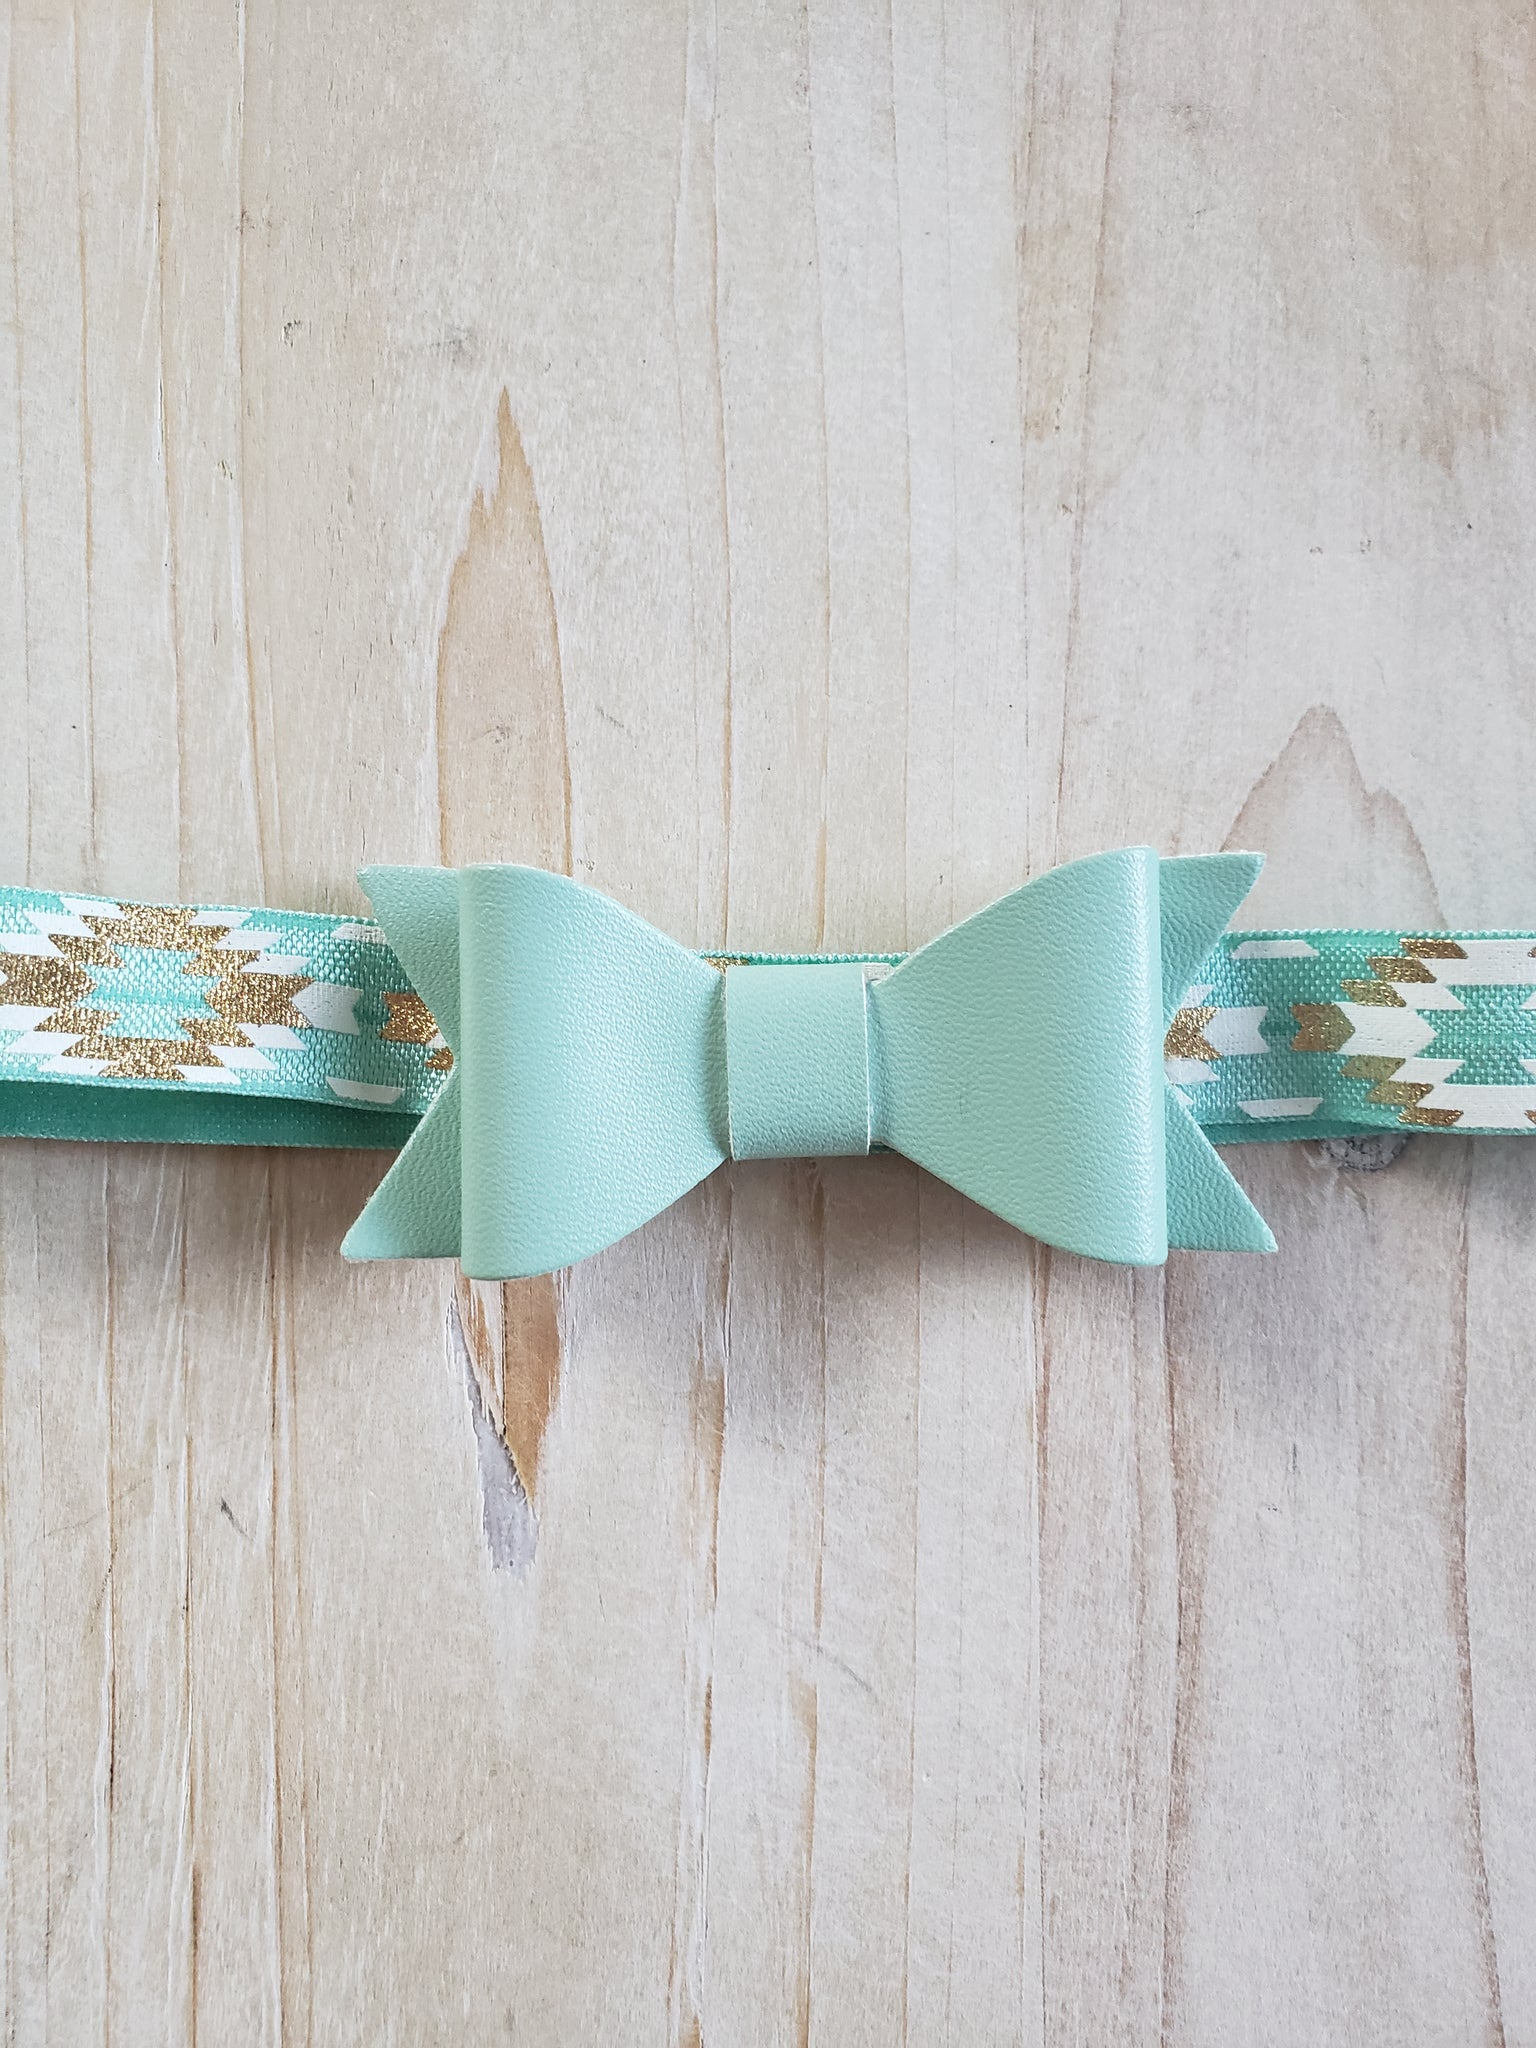 Aztec Patterned Headband- Blue Bow